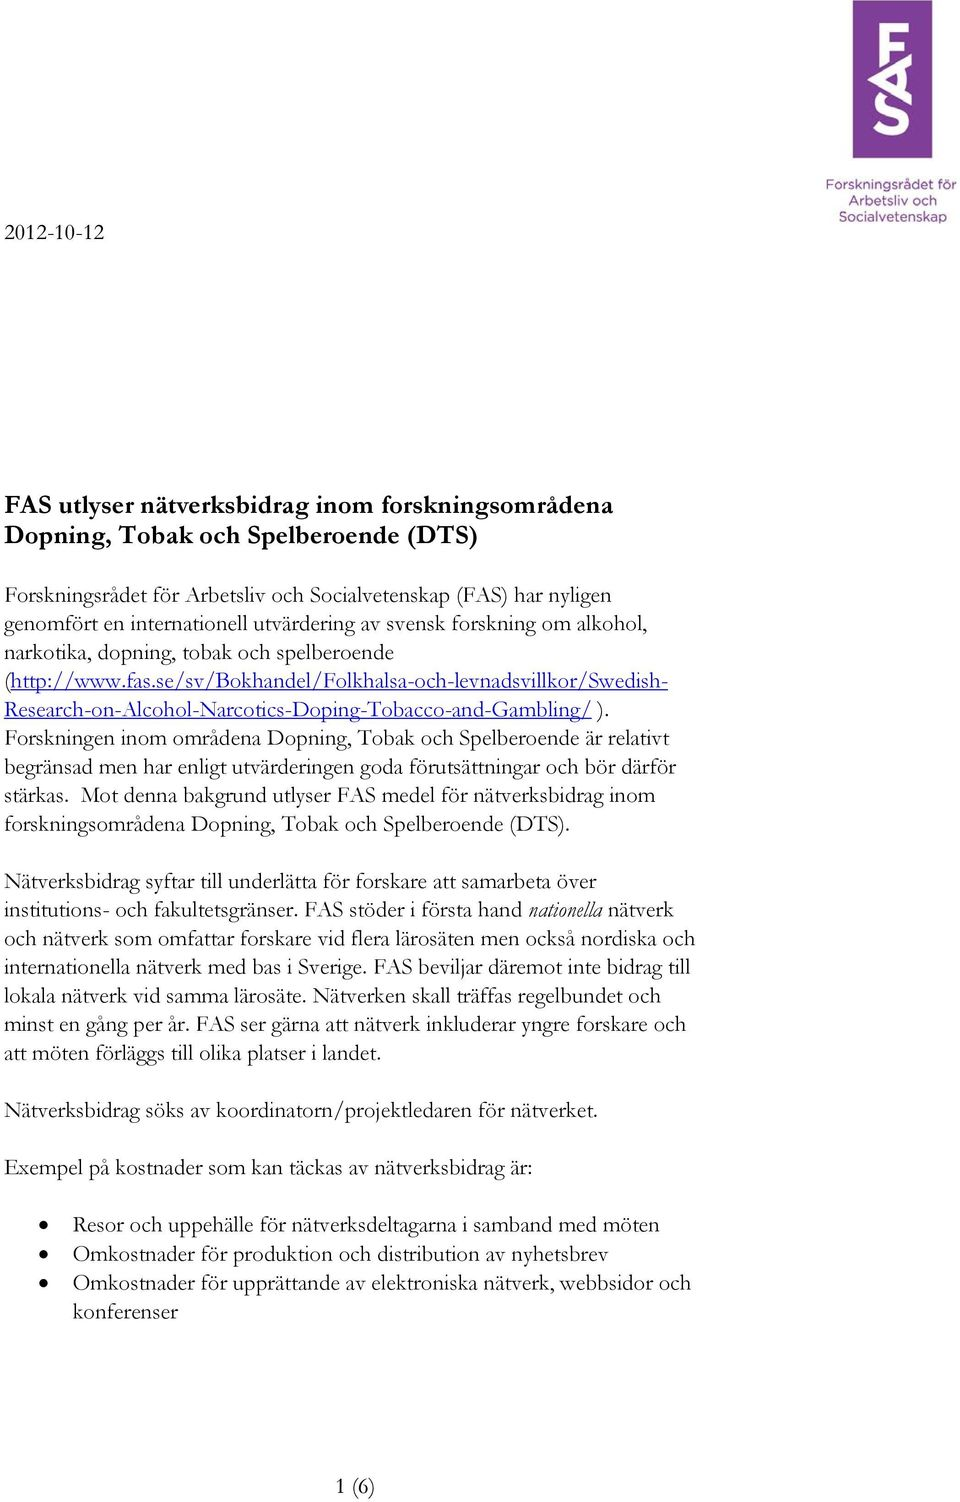 se/sv/bokhandel/folkhalsa-och-levnadsvillkor/swedish- Research-on-Alcohol-Narcotics-Doping-Tobacco-and-Gambling/ ).